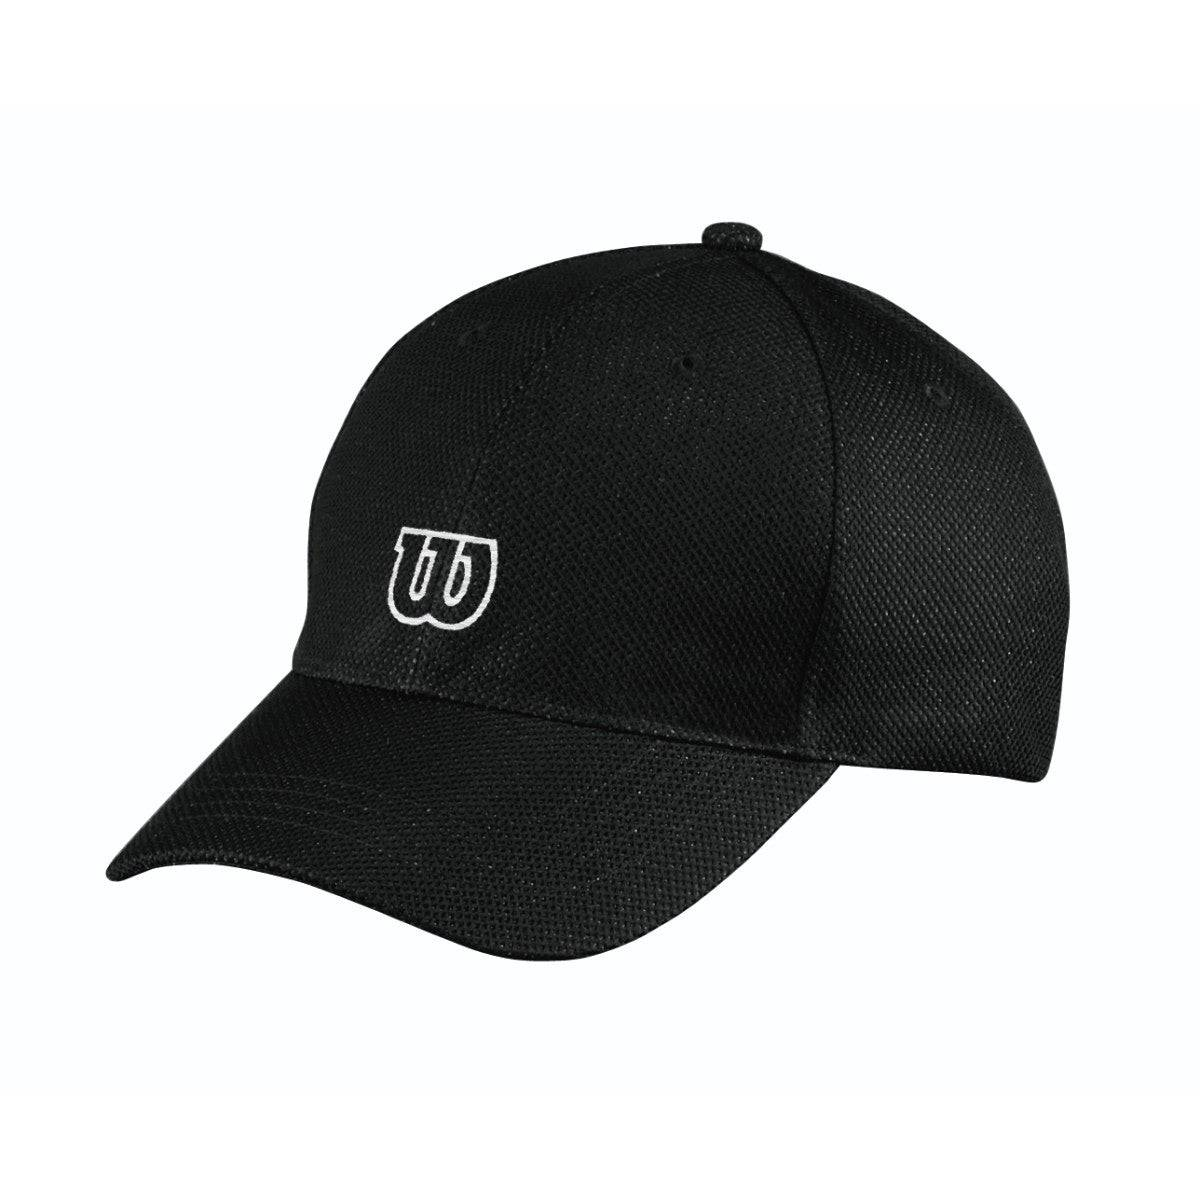 Wilson Youth Tour W Cap in Black - Size: One Size Fits Most  - Unisex - Black - Size: One Size Fits Most